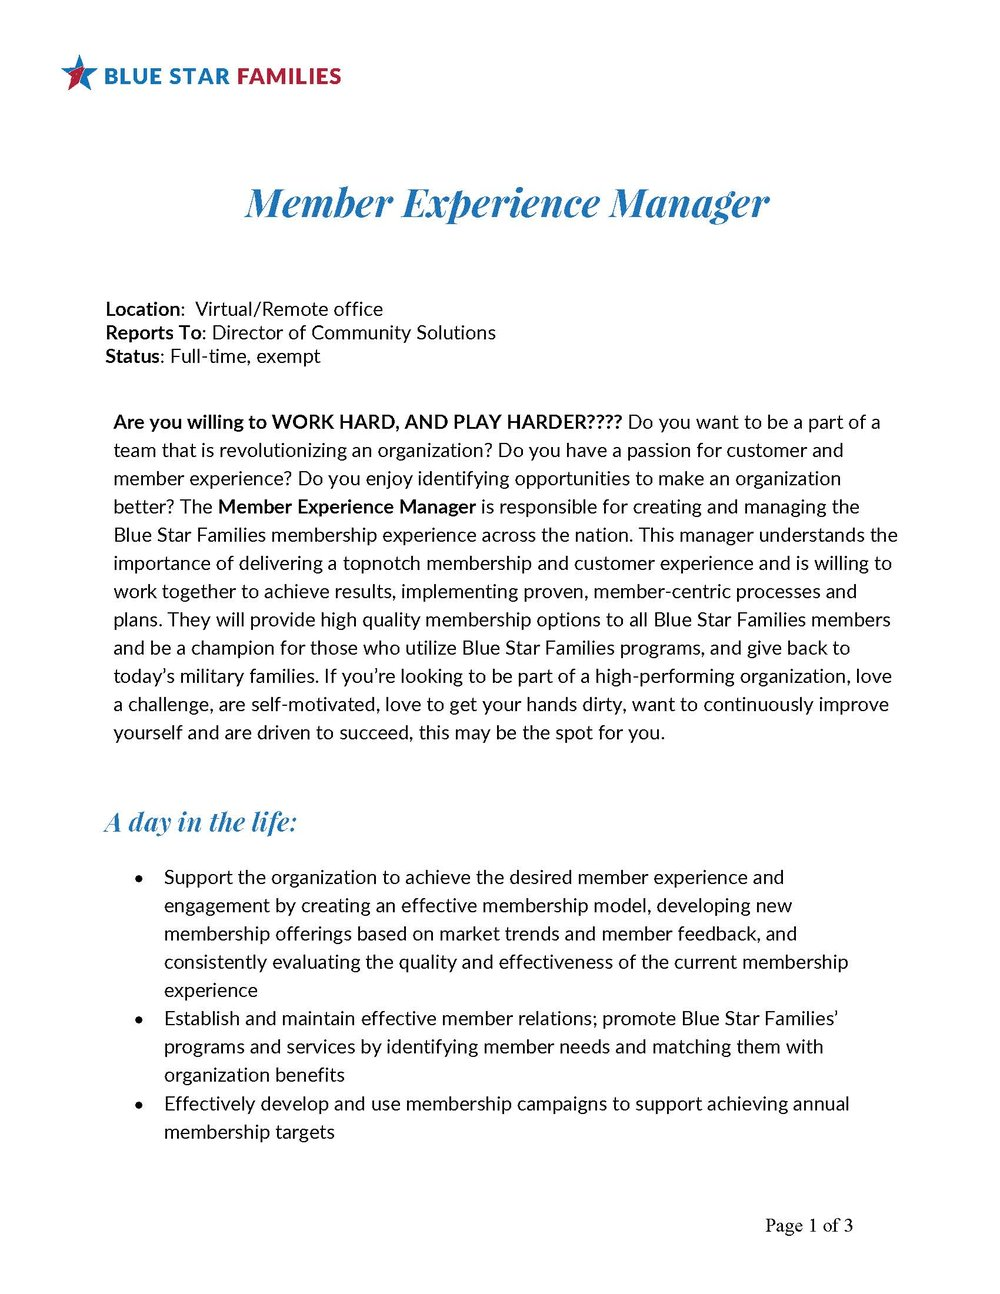 Creative PD_Member Experience Manager_2018 FINAL_Page_1.jpg